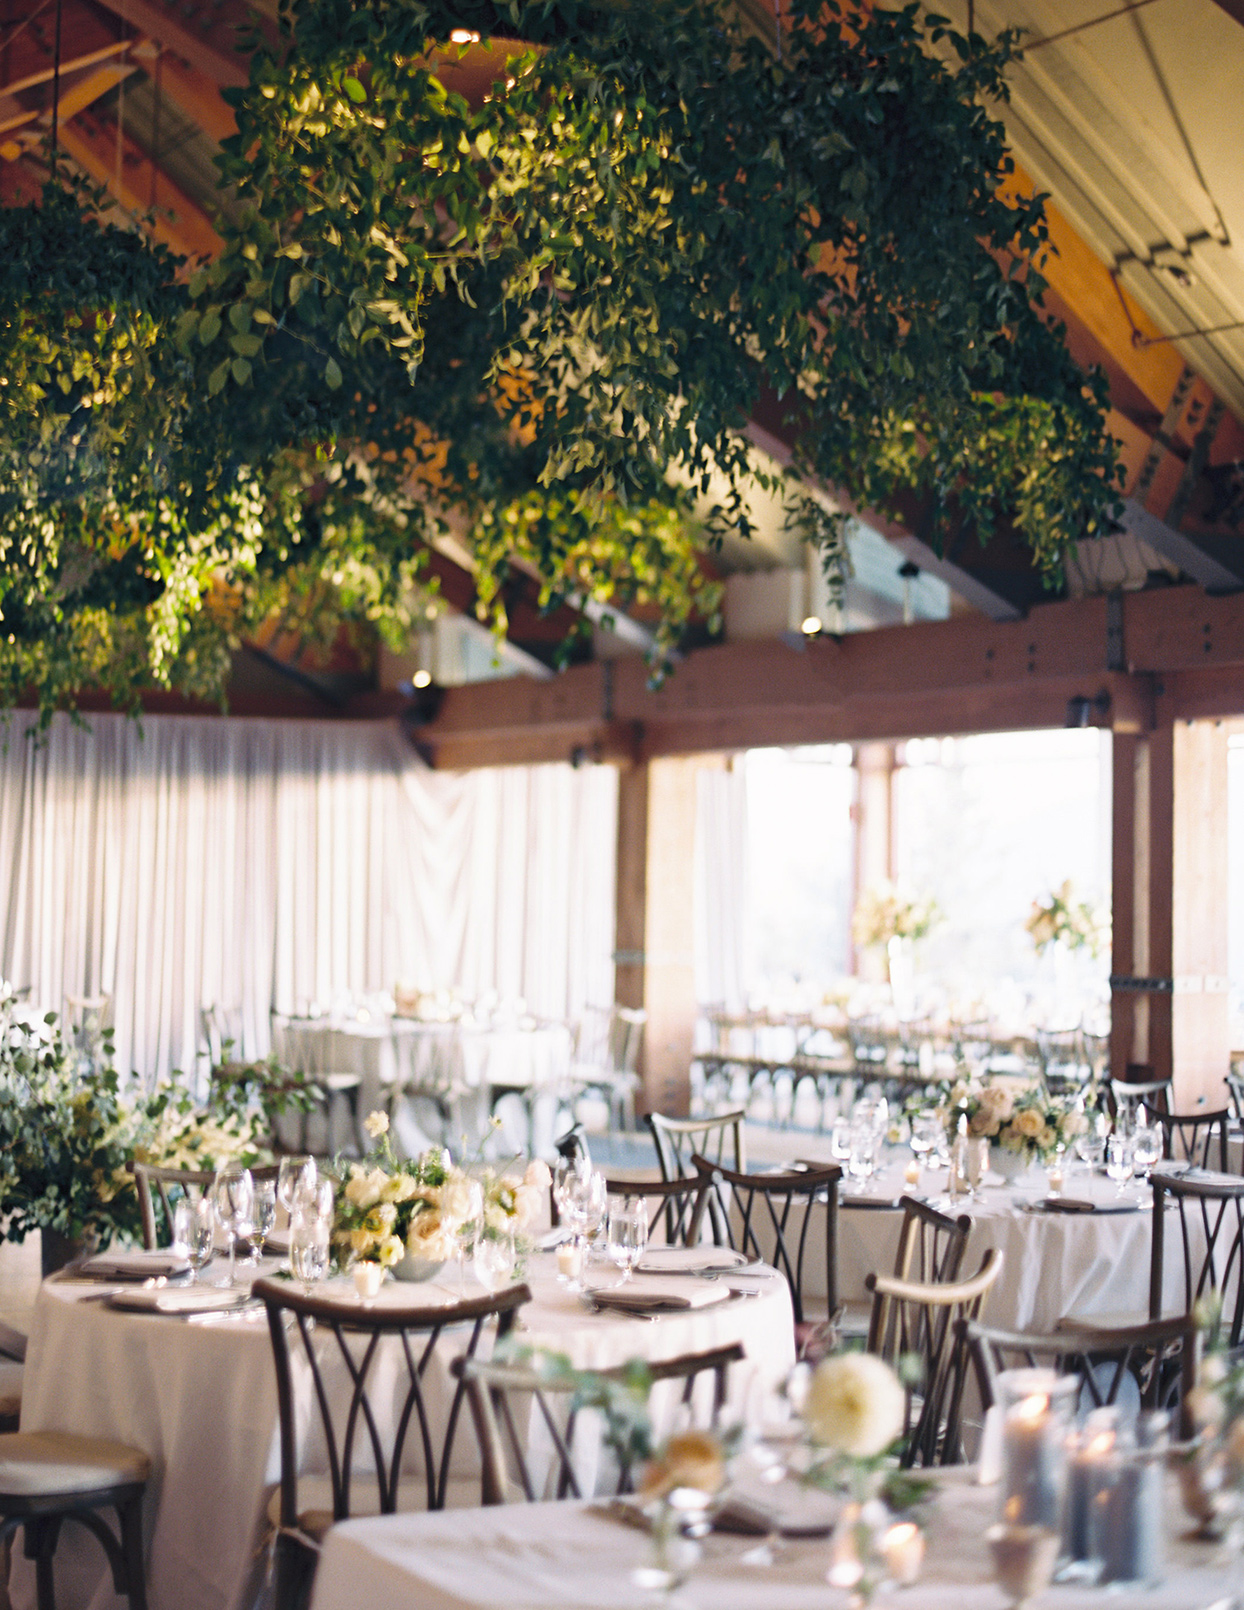 kimmie mike wedding reception space with greenery hanging from ceiling